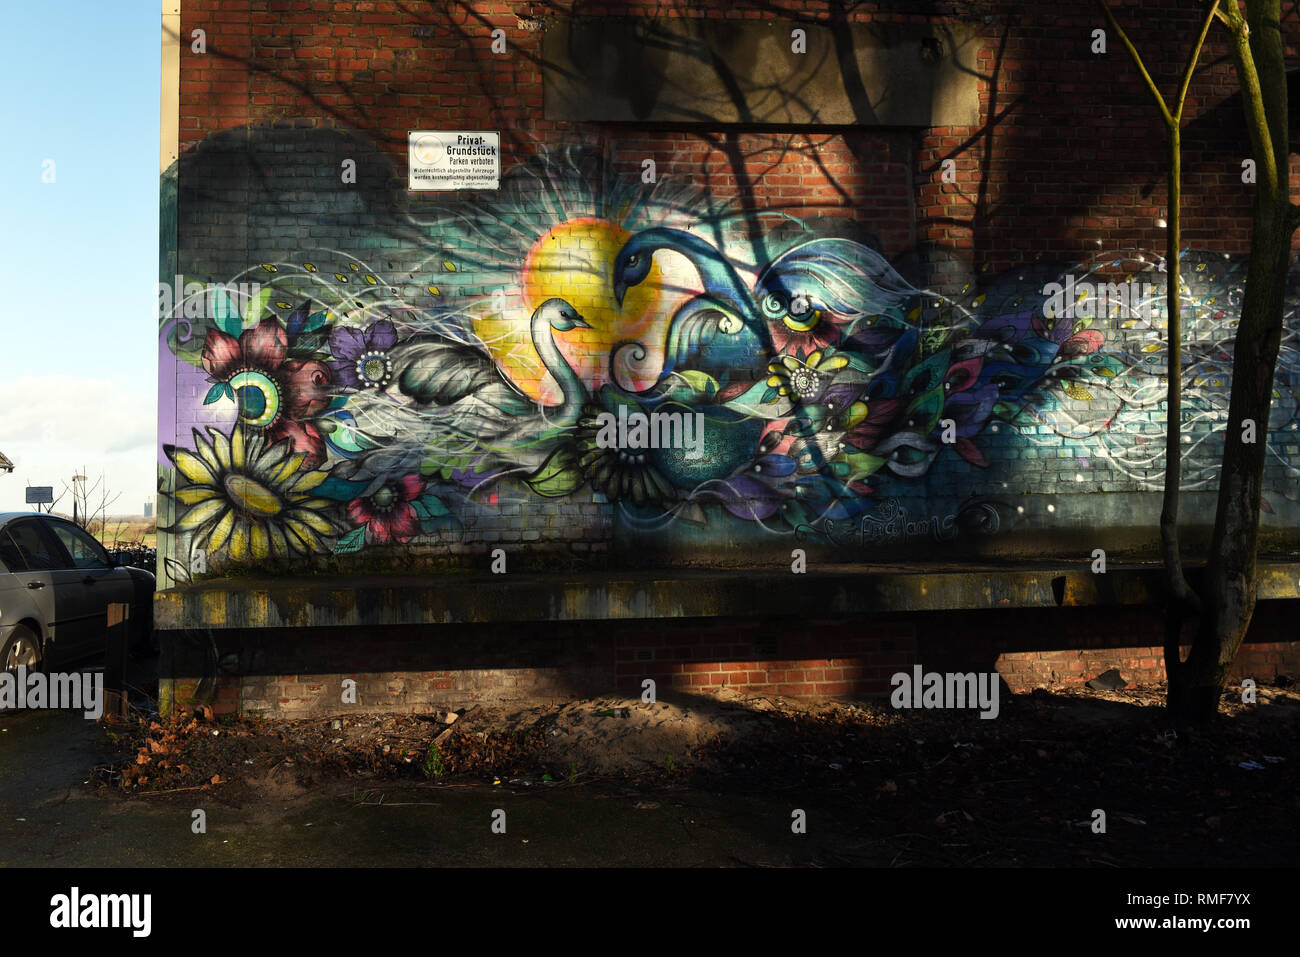 Krefeld, Germany. 11th Feb, 2019. 'Street Art Art' on the building of the 'Rhine Side Gallery' on the banks of the Rhine in the district of Uerdingen, which was created by the street art artist 'Ruben Poncia' as part of the event 'Rhine Side Gallery 2018' of the city of Krefeld. Credit: Horst Ossinger/dpa/Alamy Live News - Stock Image